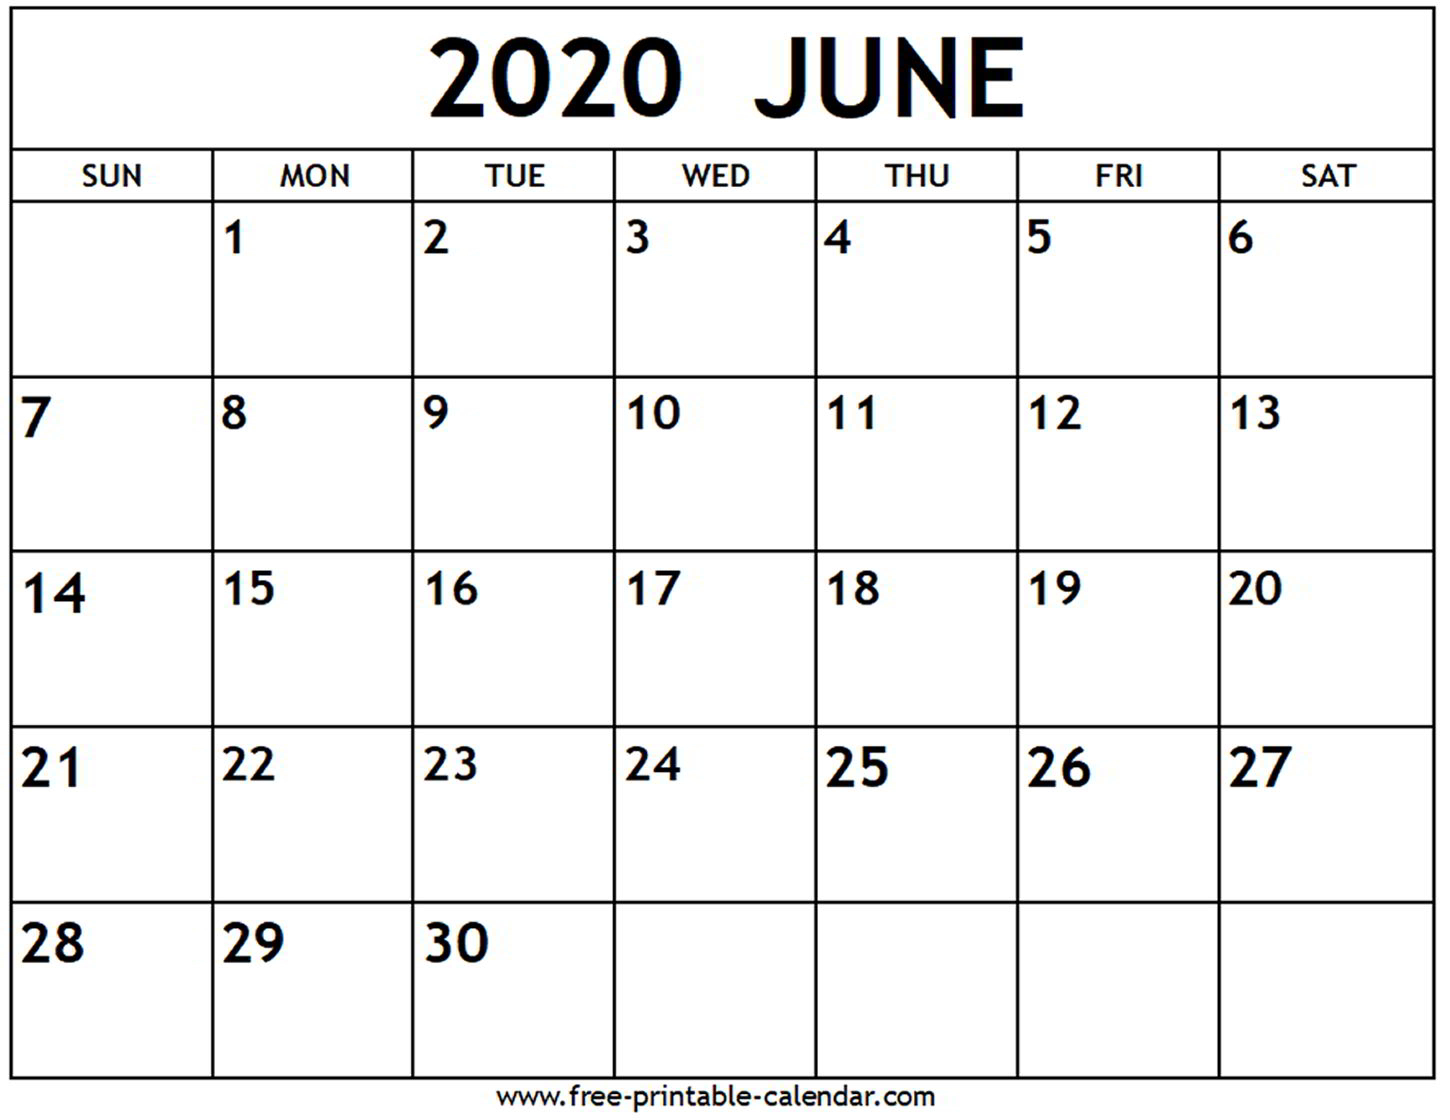 Printable Calendars June 2020 - Wpa.wpart.co